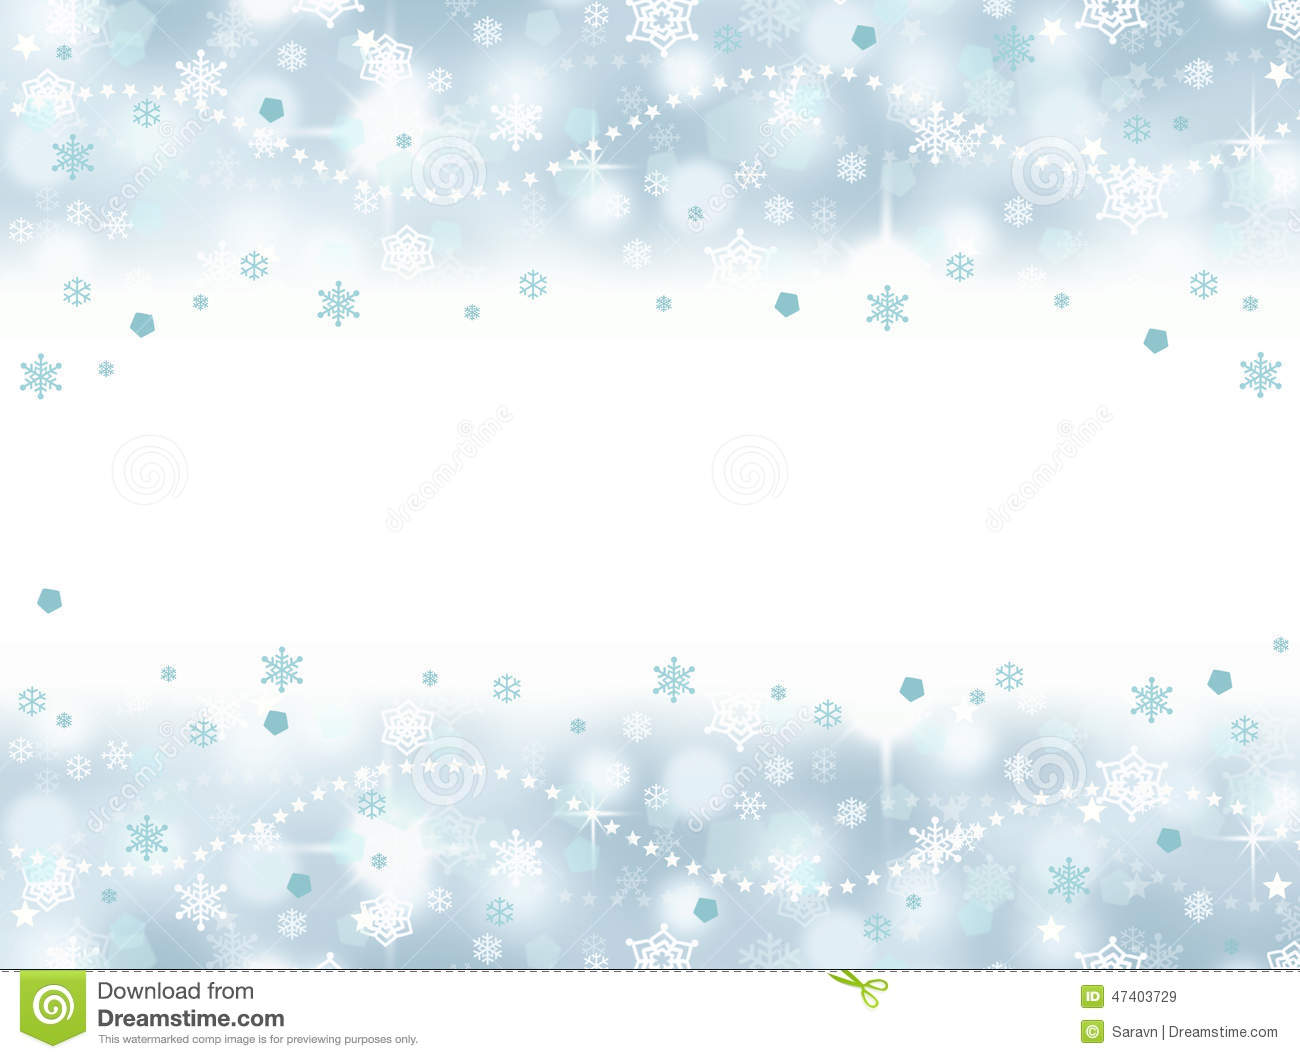 Frozen Winter Aqua Blue Snowflake Party Background With Blank Space